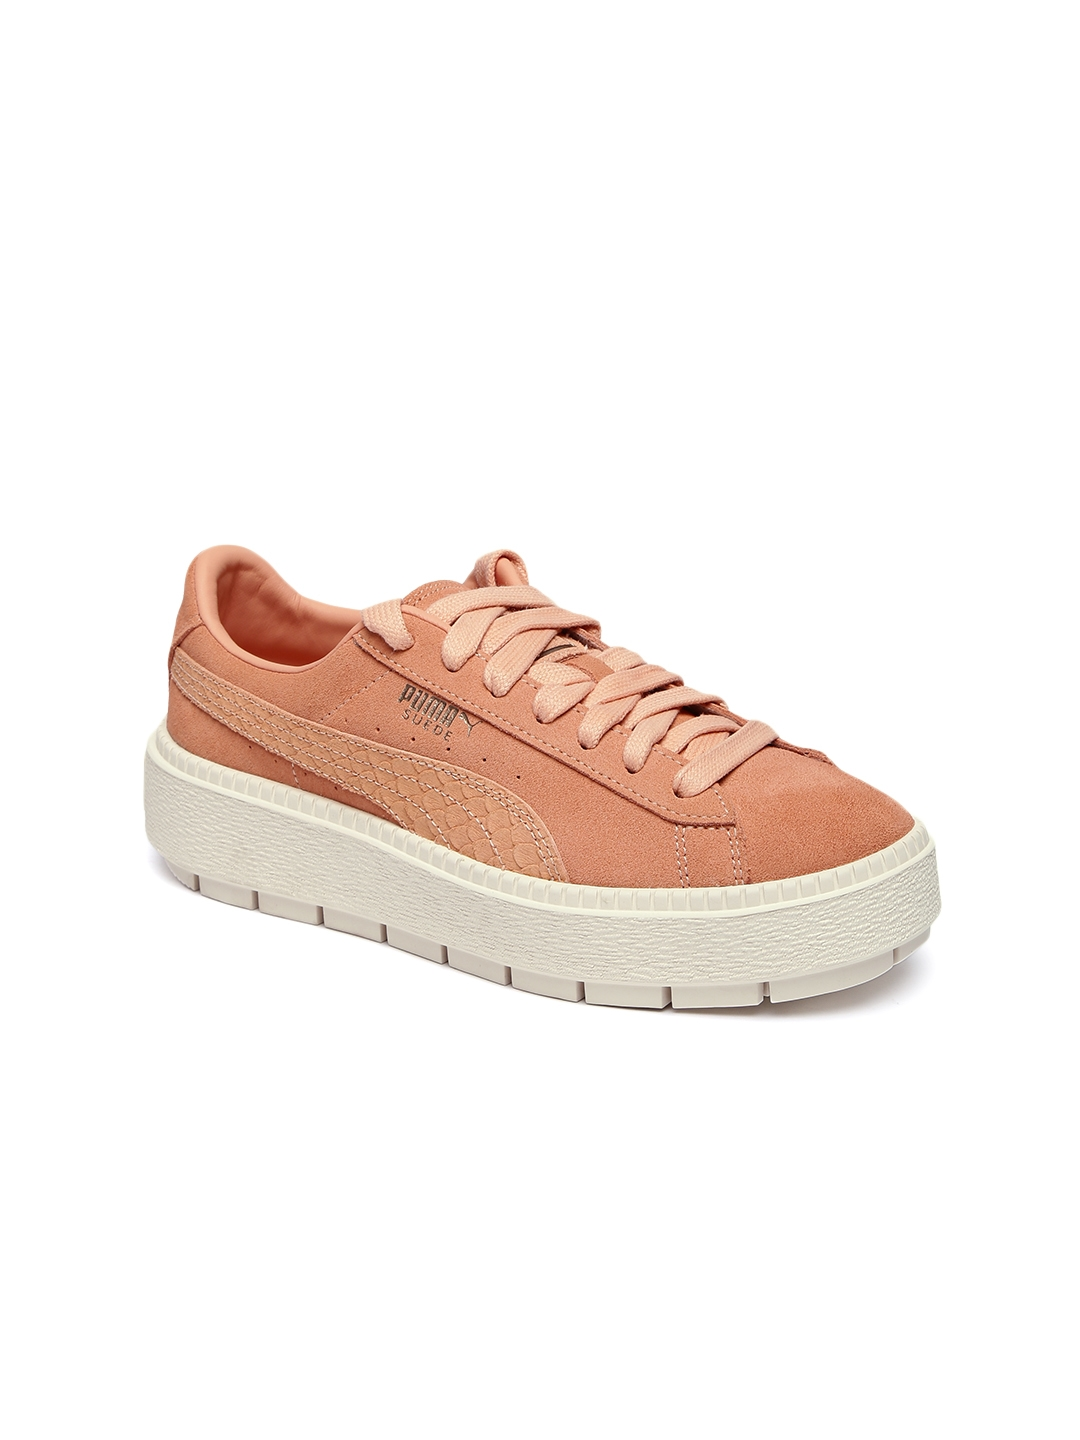 e17495f4f351 Buy Puma Women Coral Suede Platform Trace Animal Sneakers - Casual ...